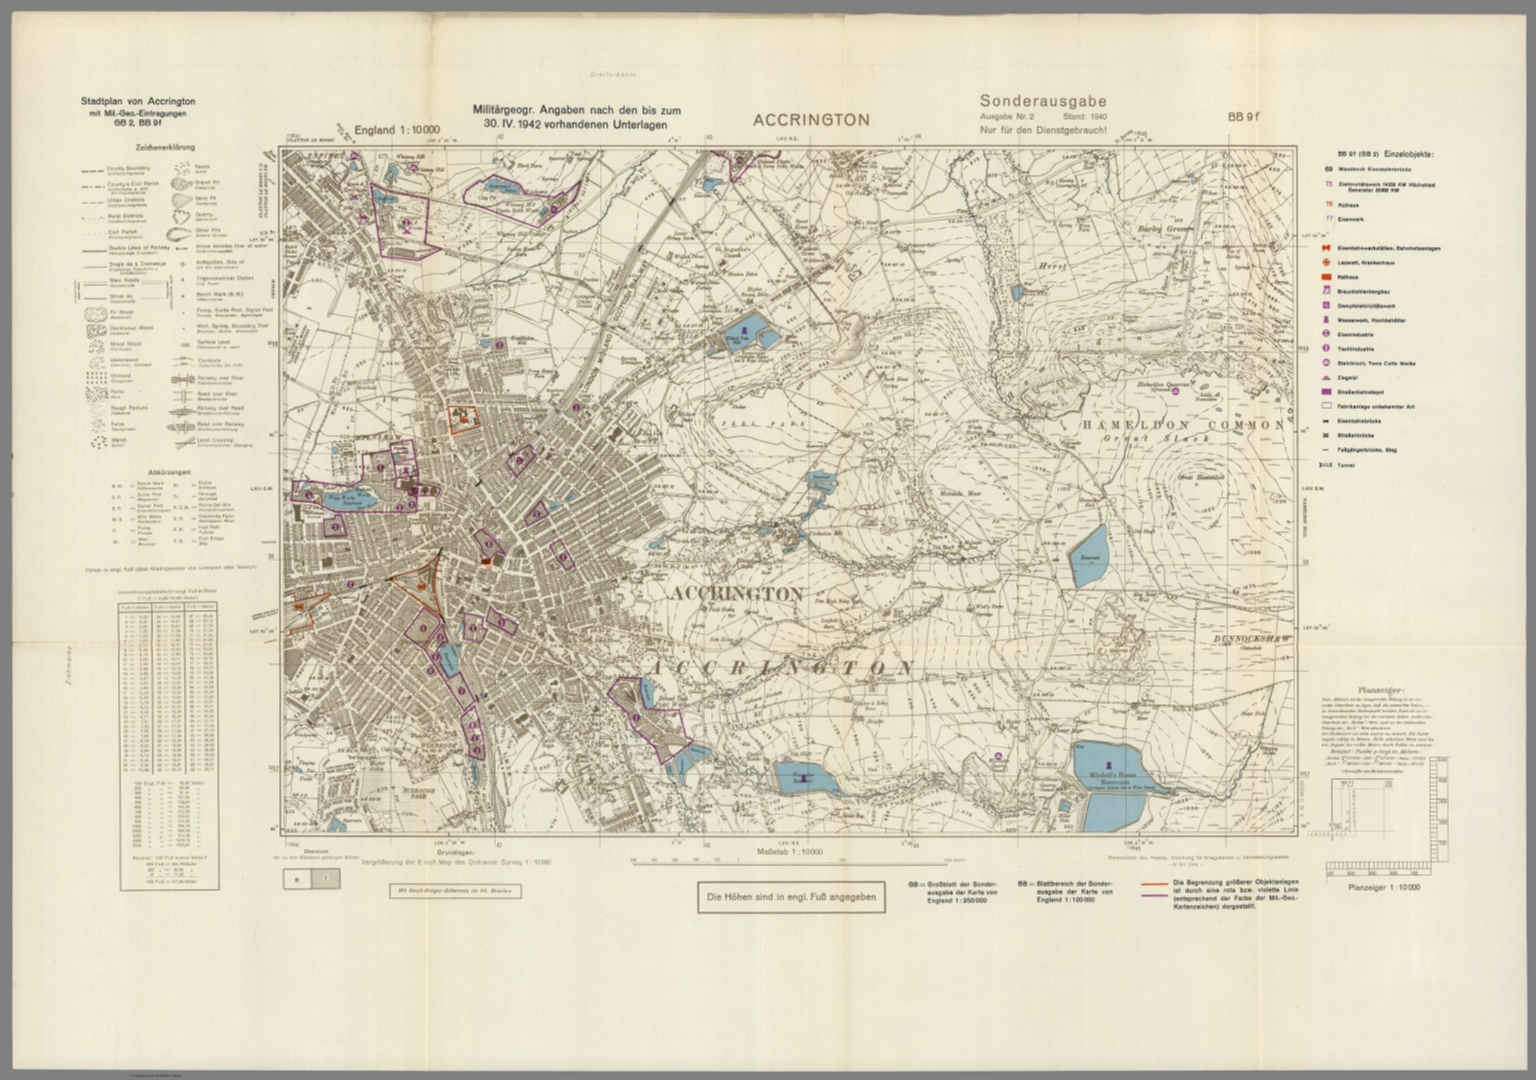 Map 9f England.Street Map Of Accrington England With Military Geographic Features